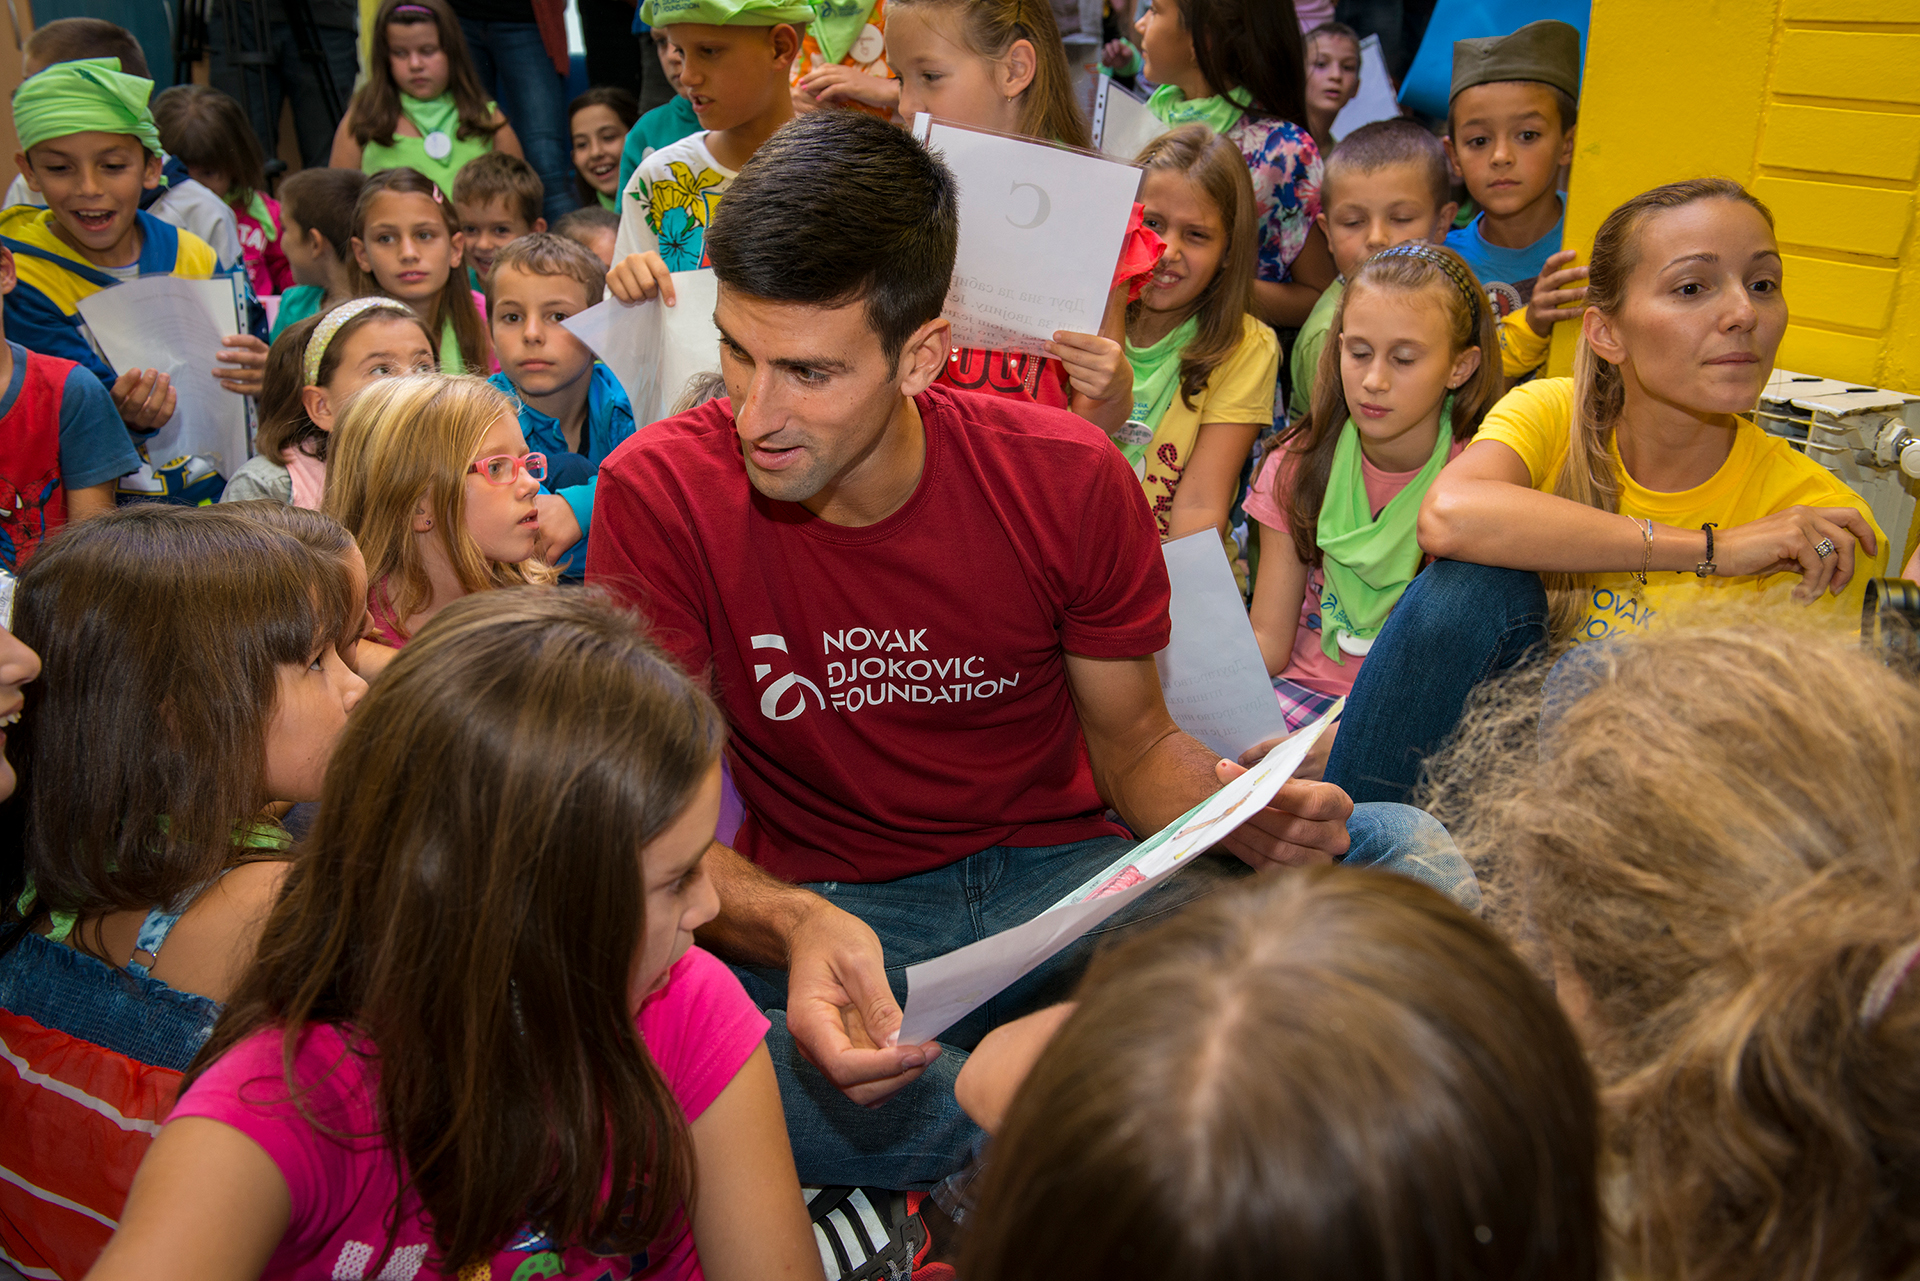 Novak Djokovic Number One Men S Tennis Player And Charity Founder